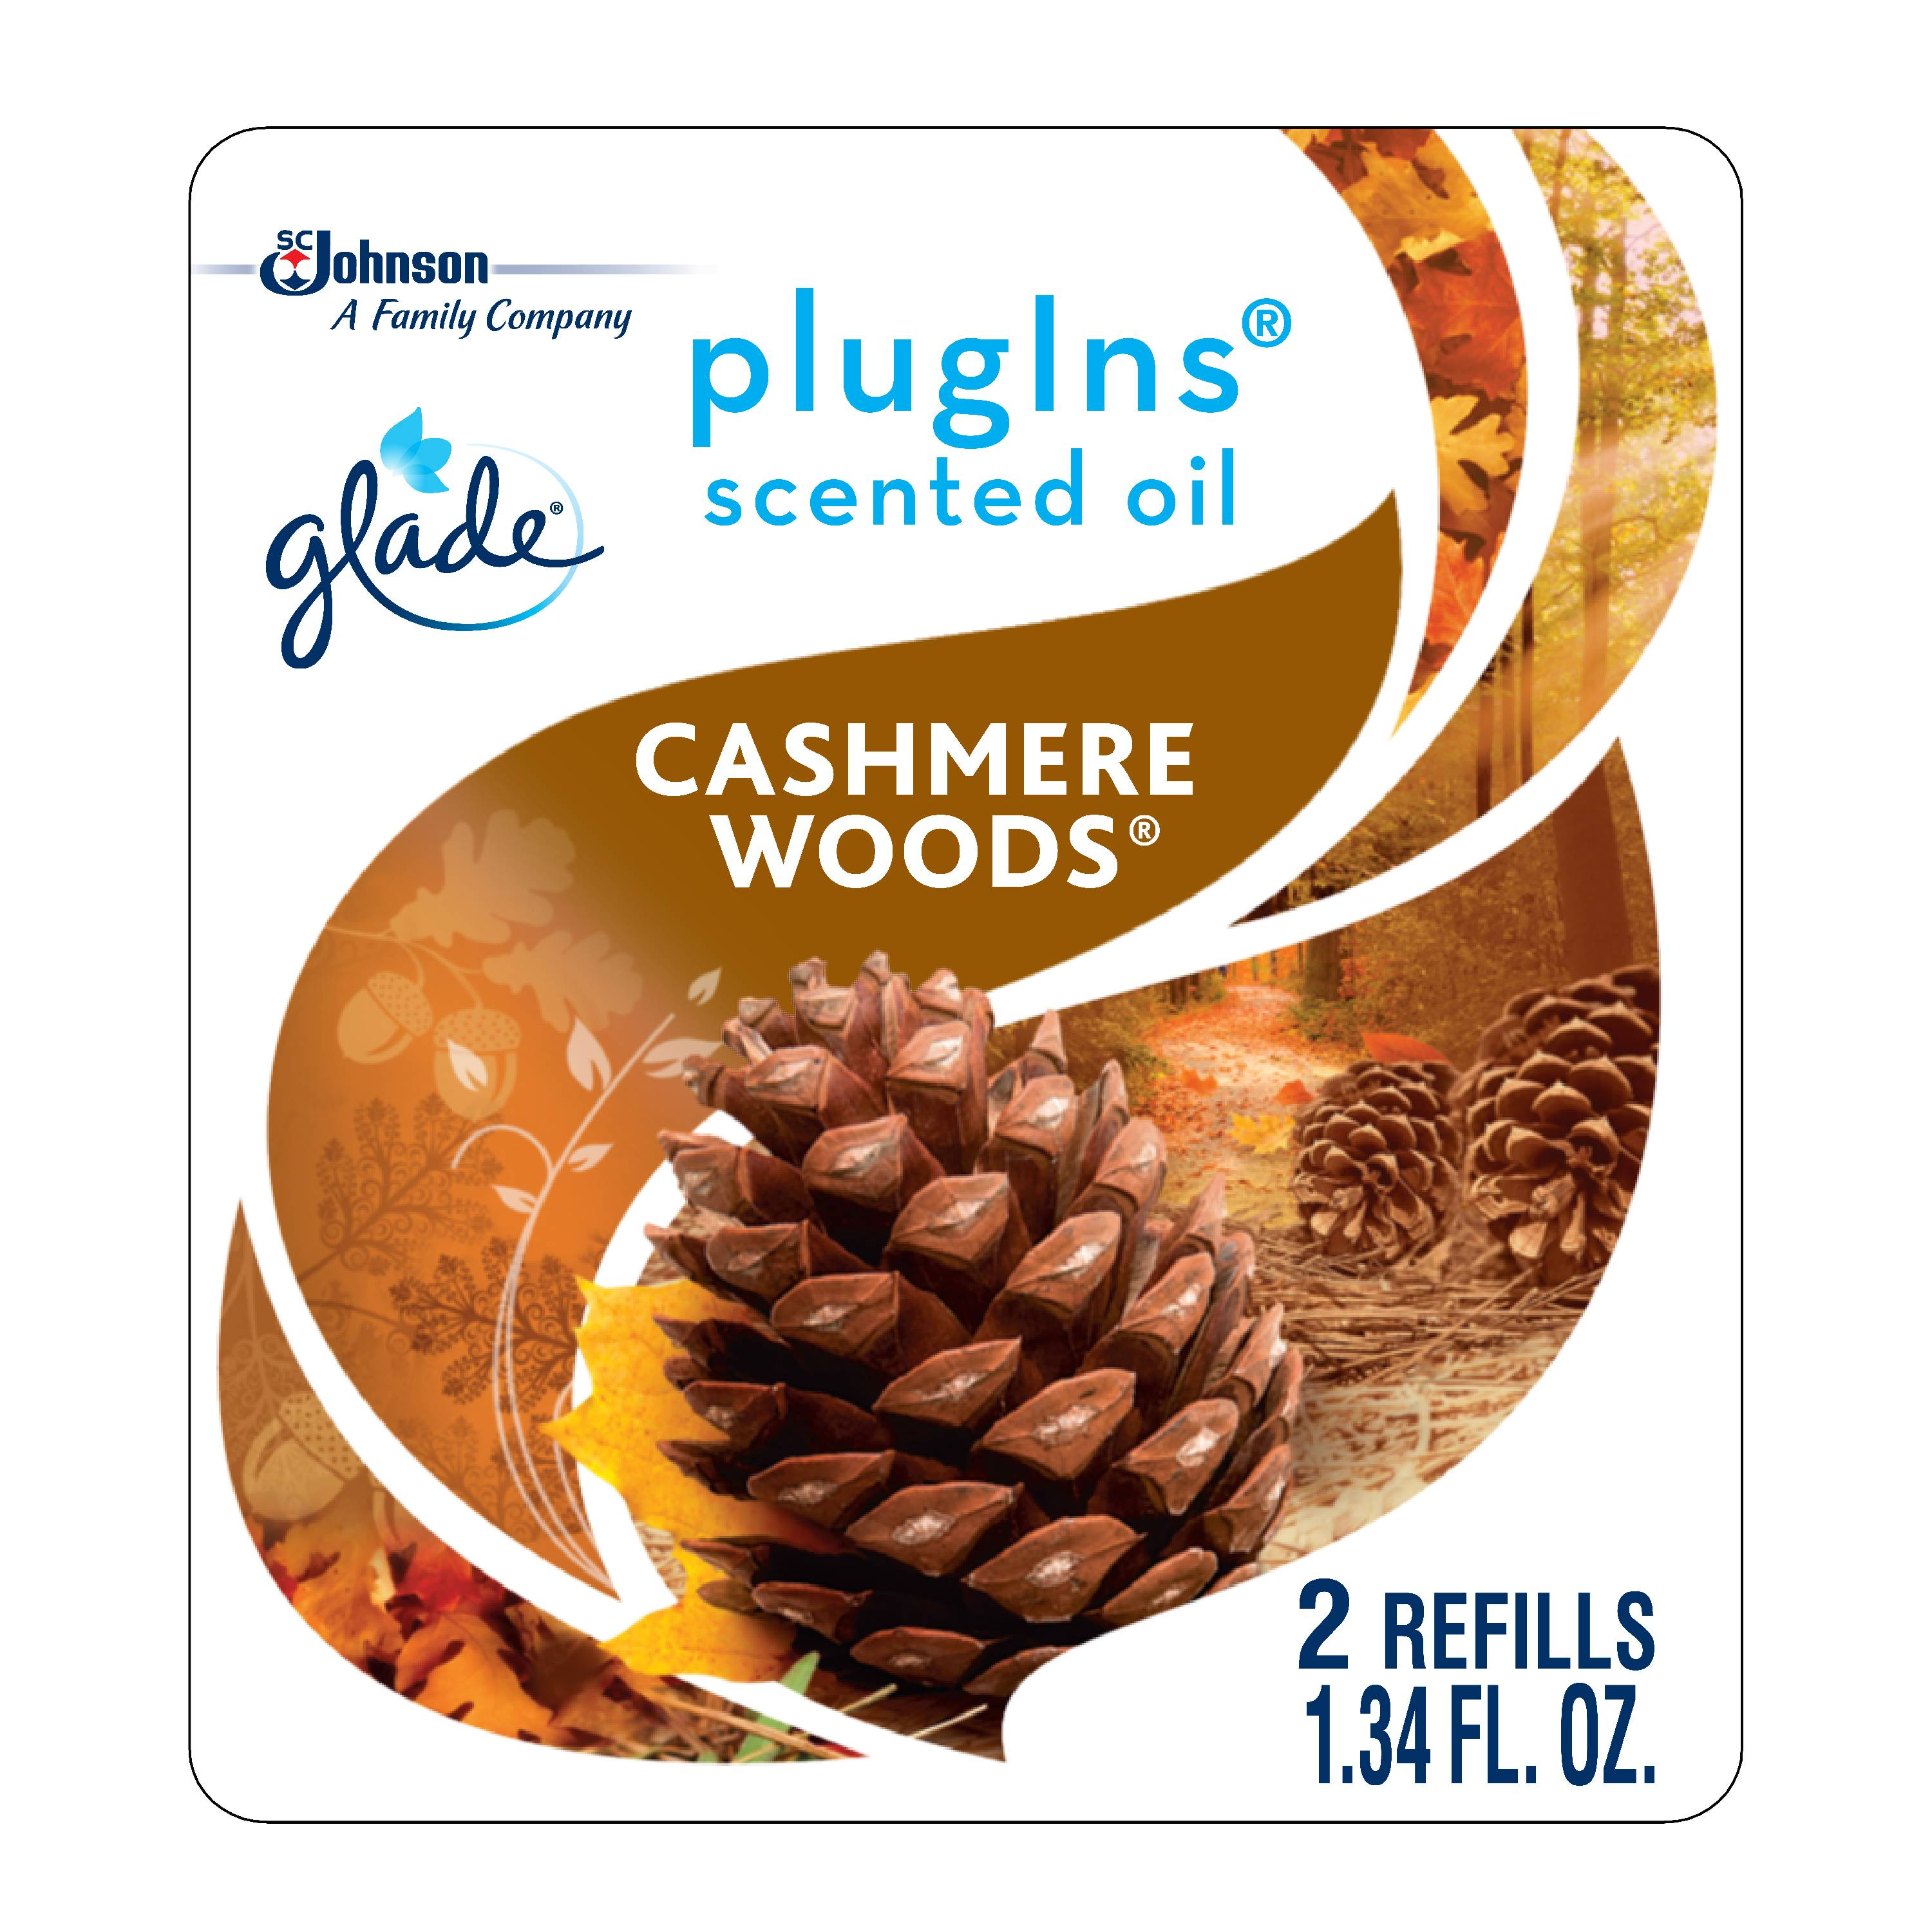 Glade PlugIns Scented Oil Refill Cashmere Woods, Essential Oil Infused Wall Plug In, Up to 50 Days of Continuous Fragrance, 1.34 oz, Pack of 2